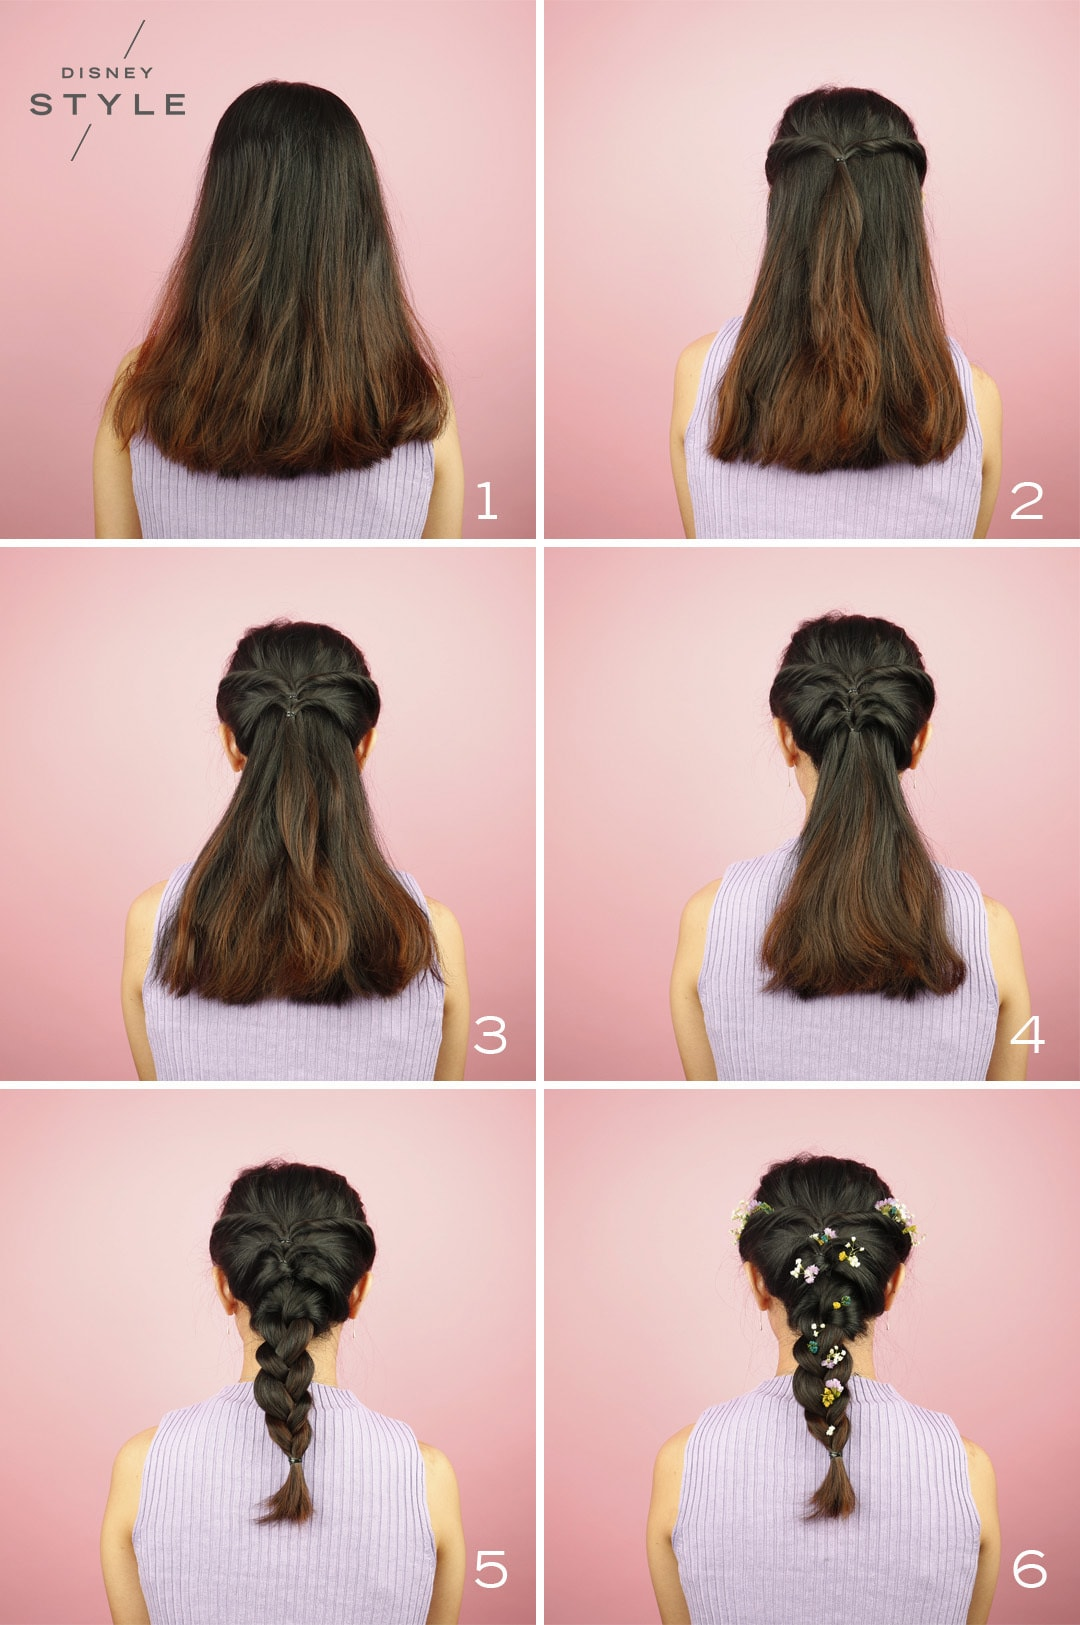 You Have to Try These Easy Yet Pretty and Modern Princess-Inspired